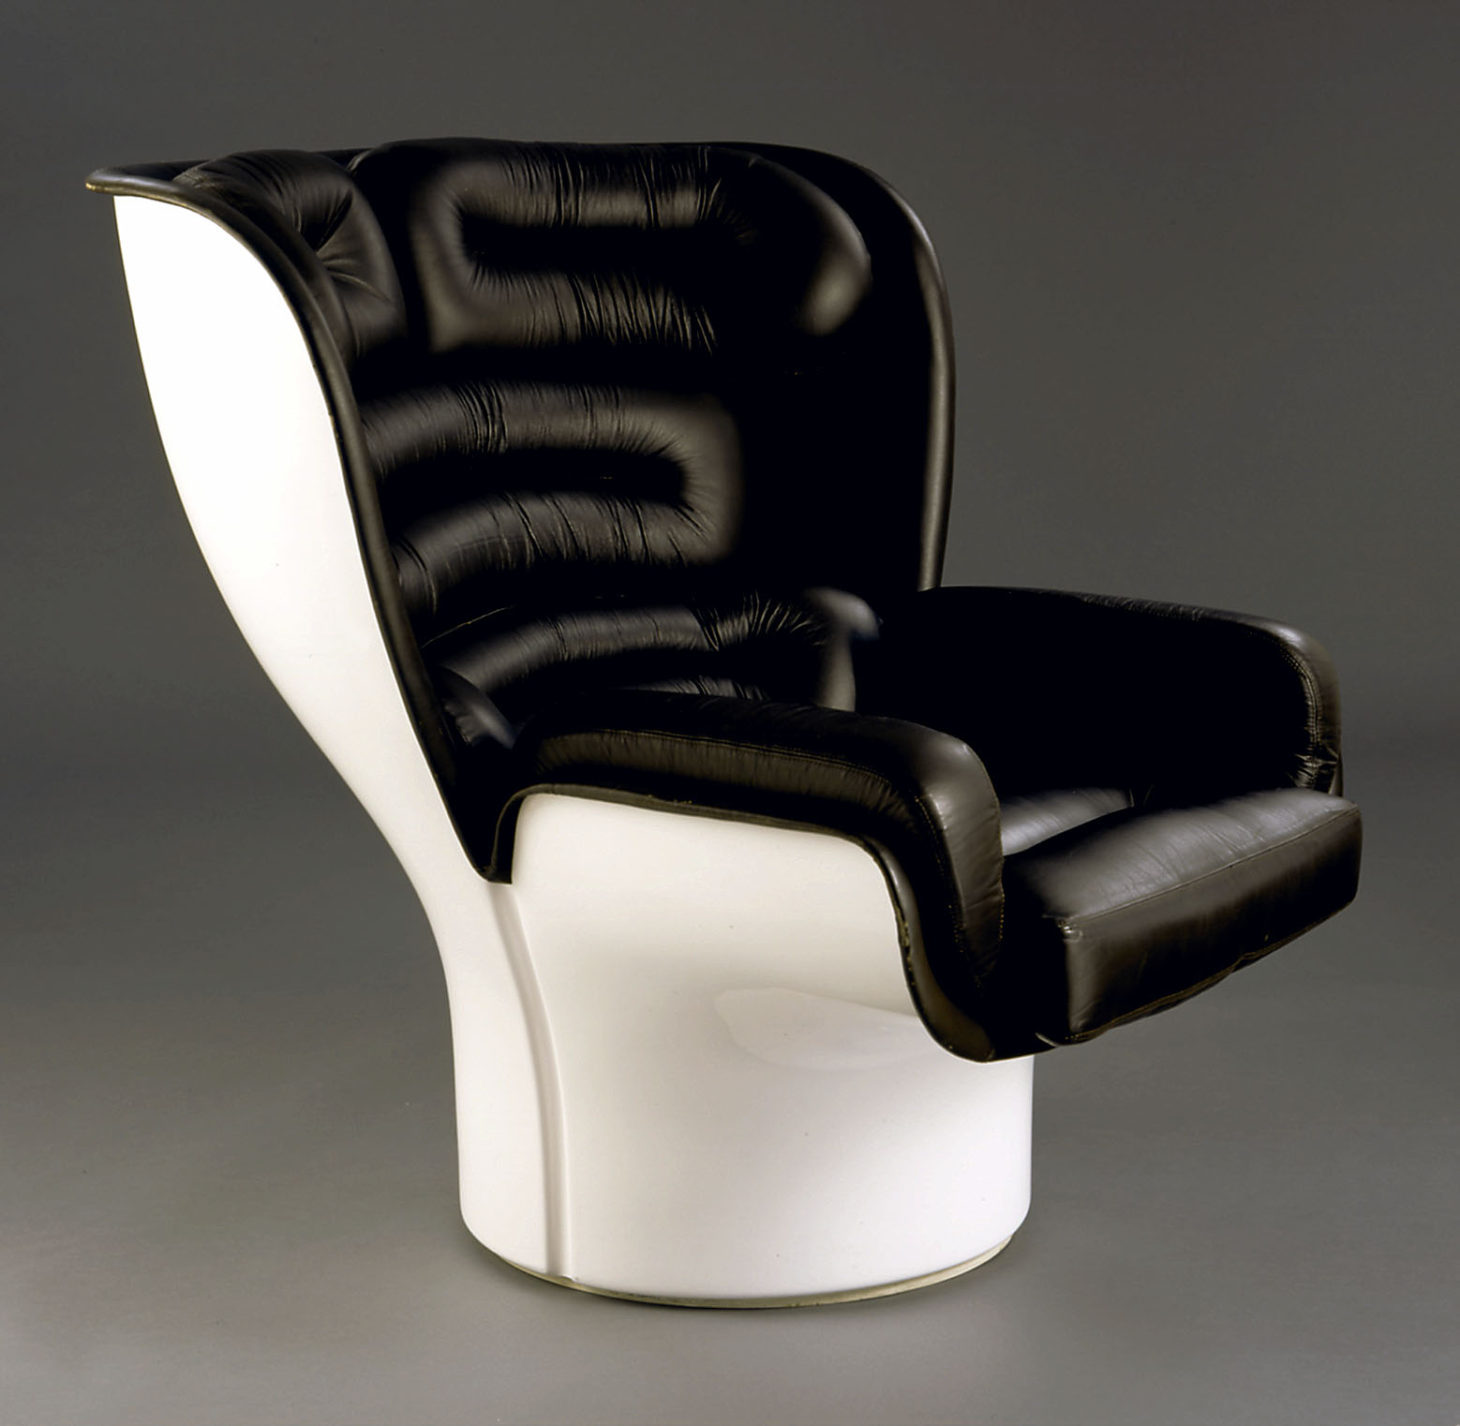 Large armchair with solid white fiberglass frame and thick cushioning covered in black leather.